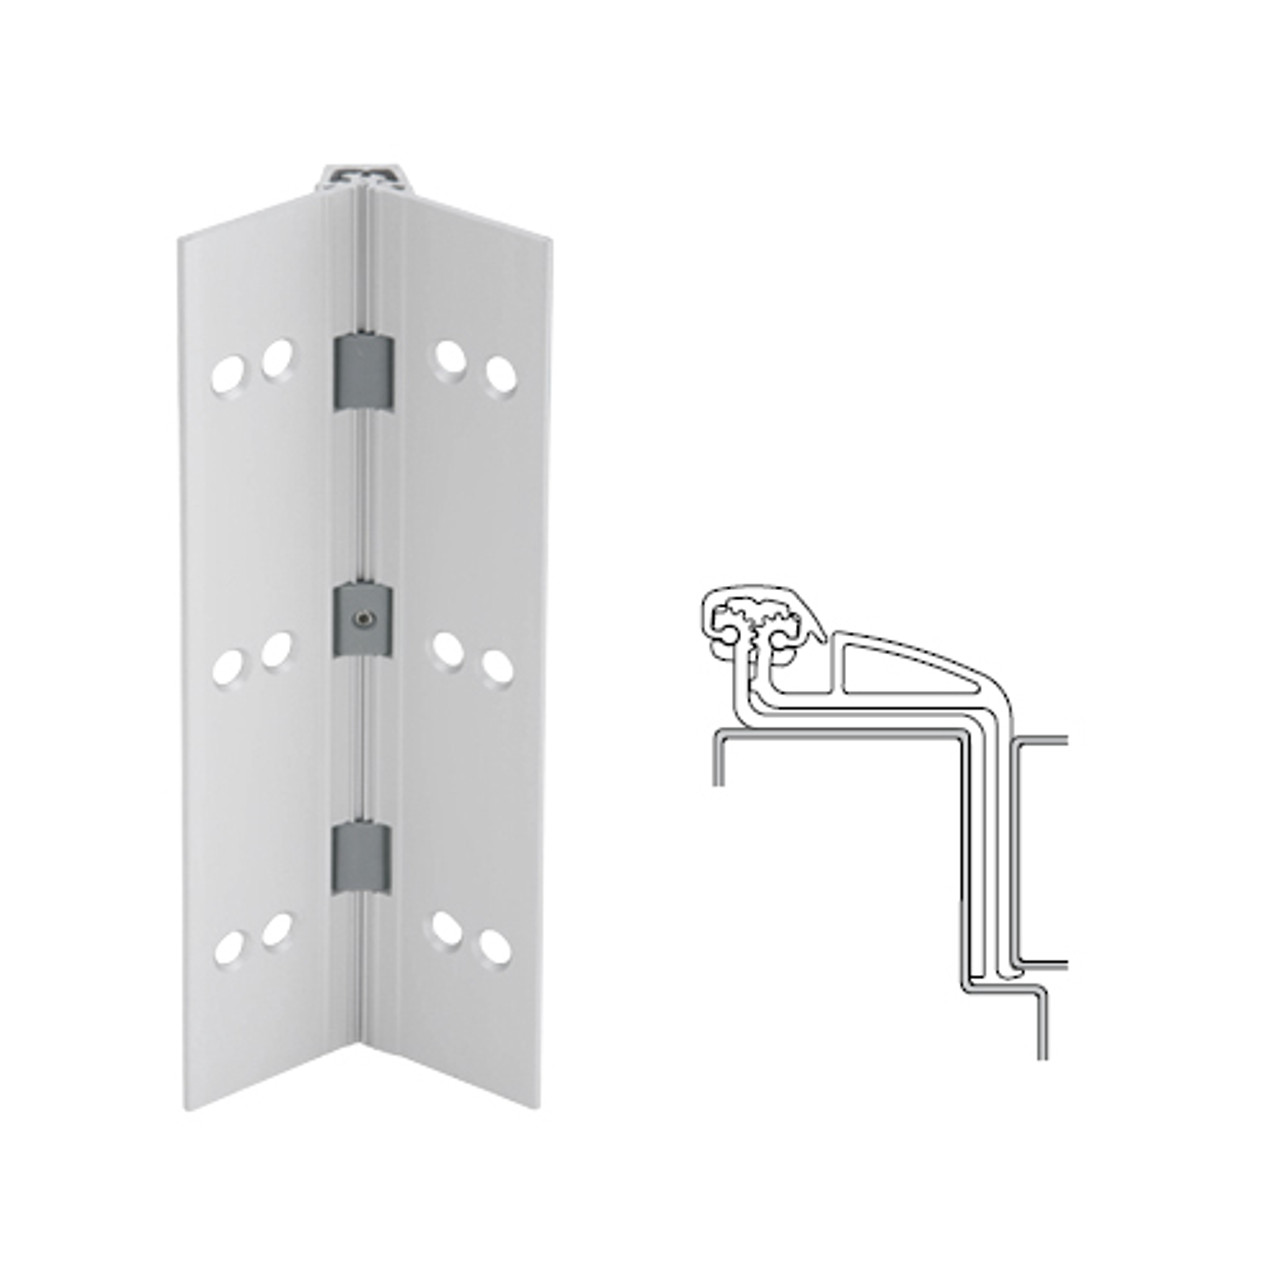 041XY-US28-120-TEKWD IVES Full Mortise Continuous Geared Hinges with Wood Screws in Satin Aluminum